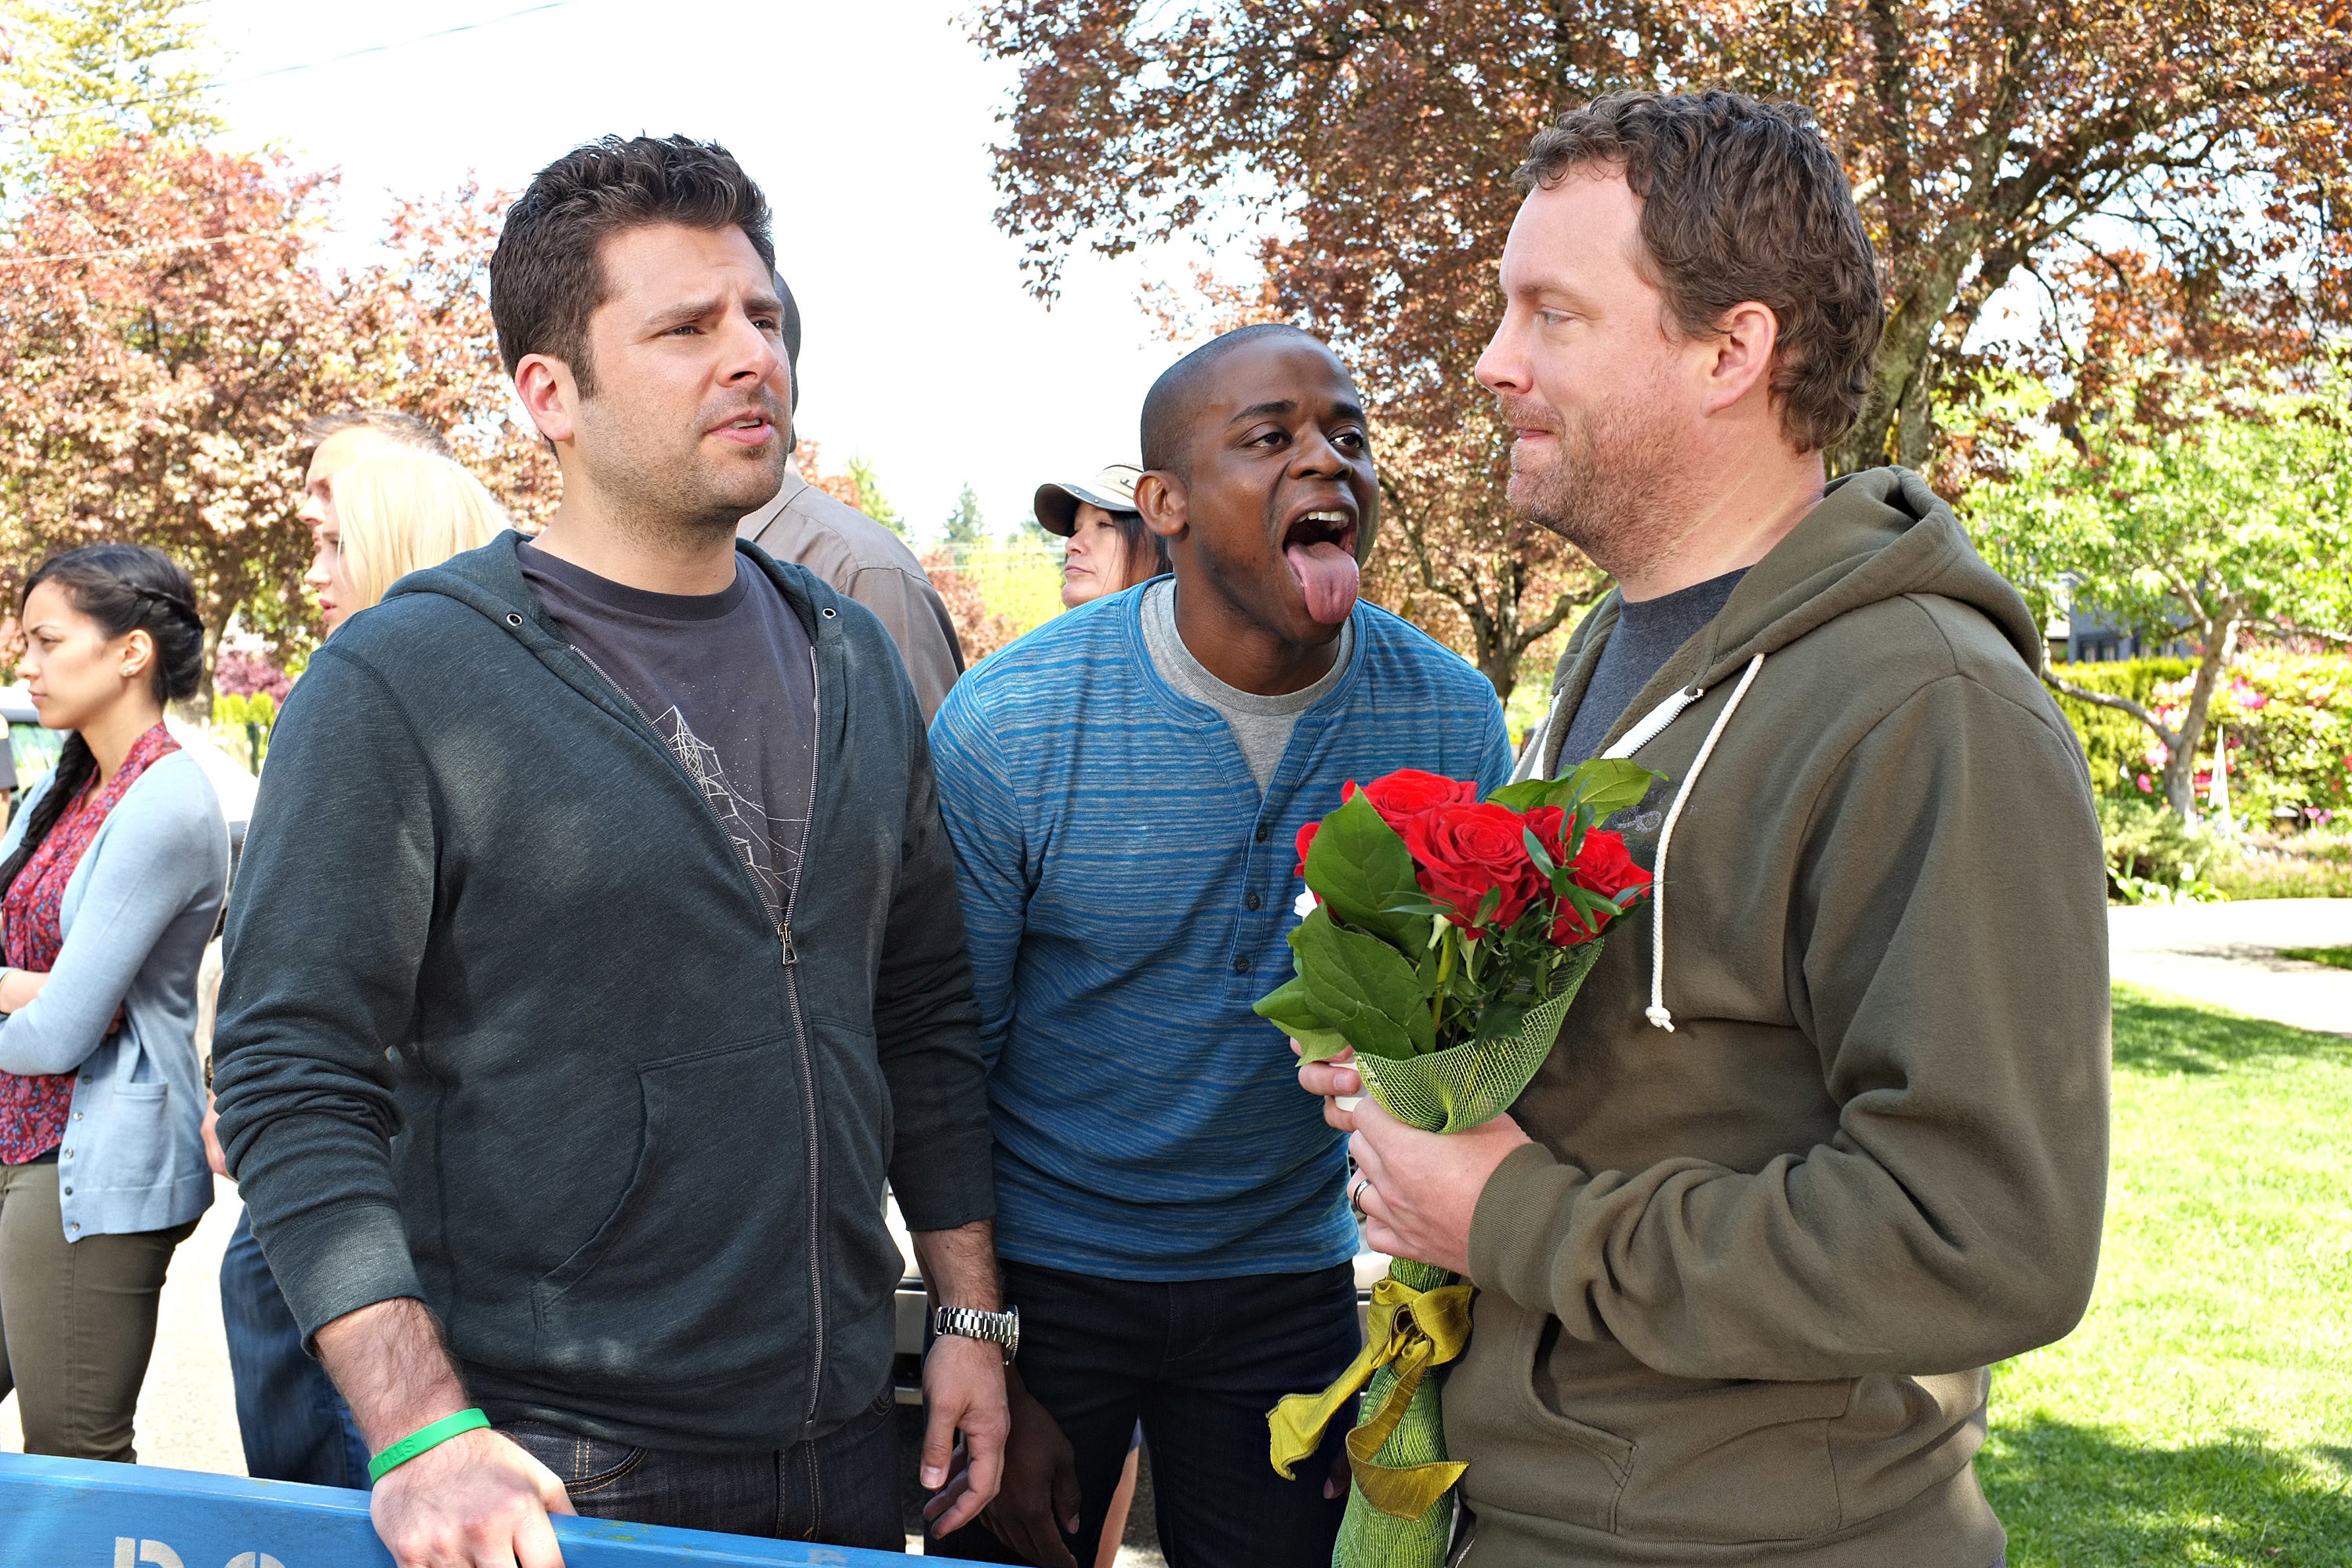 PSYCH, l-r: James Roday, Dule Hill in 'S.E.I.Z.E. the Day' (Season 8, Episode 2, aired January 15, 2014)